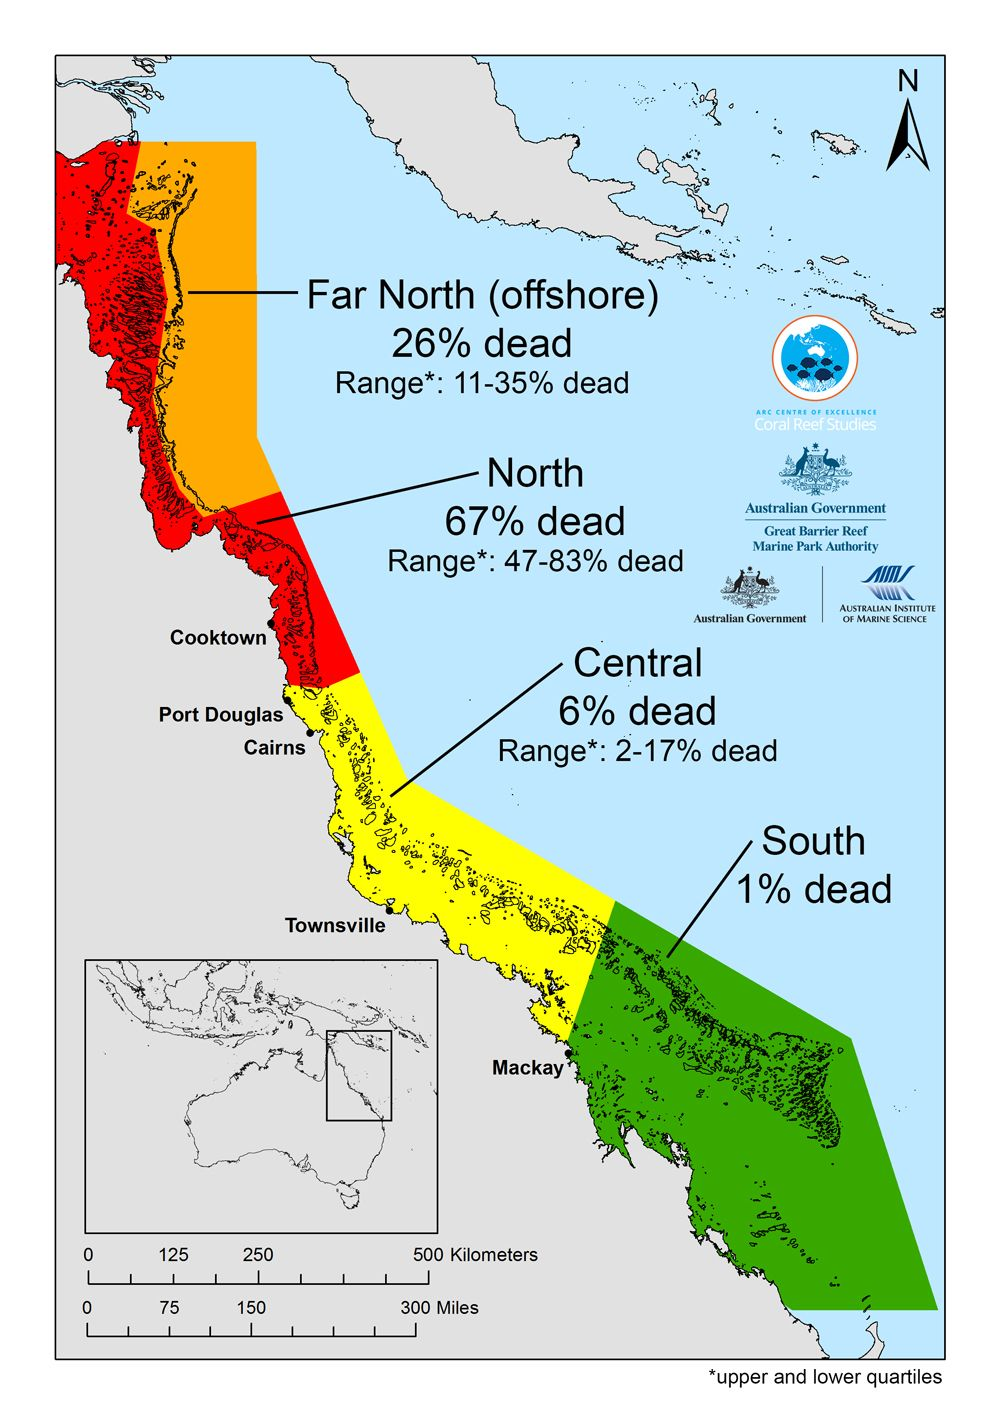 This Map Shows The Average Coral Loss Along The Great Barrier Reef